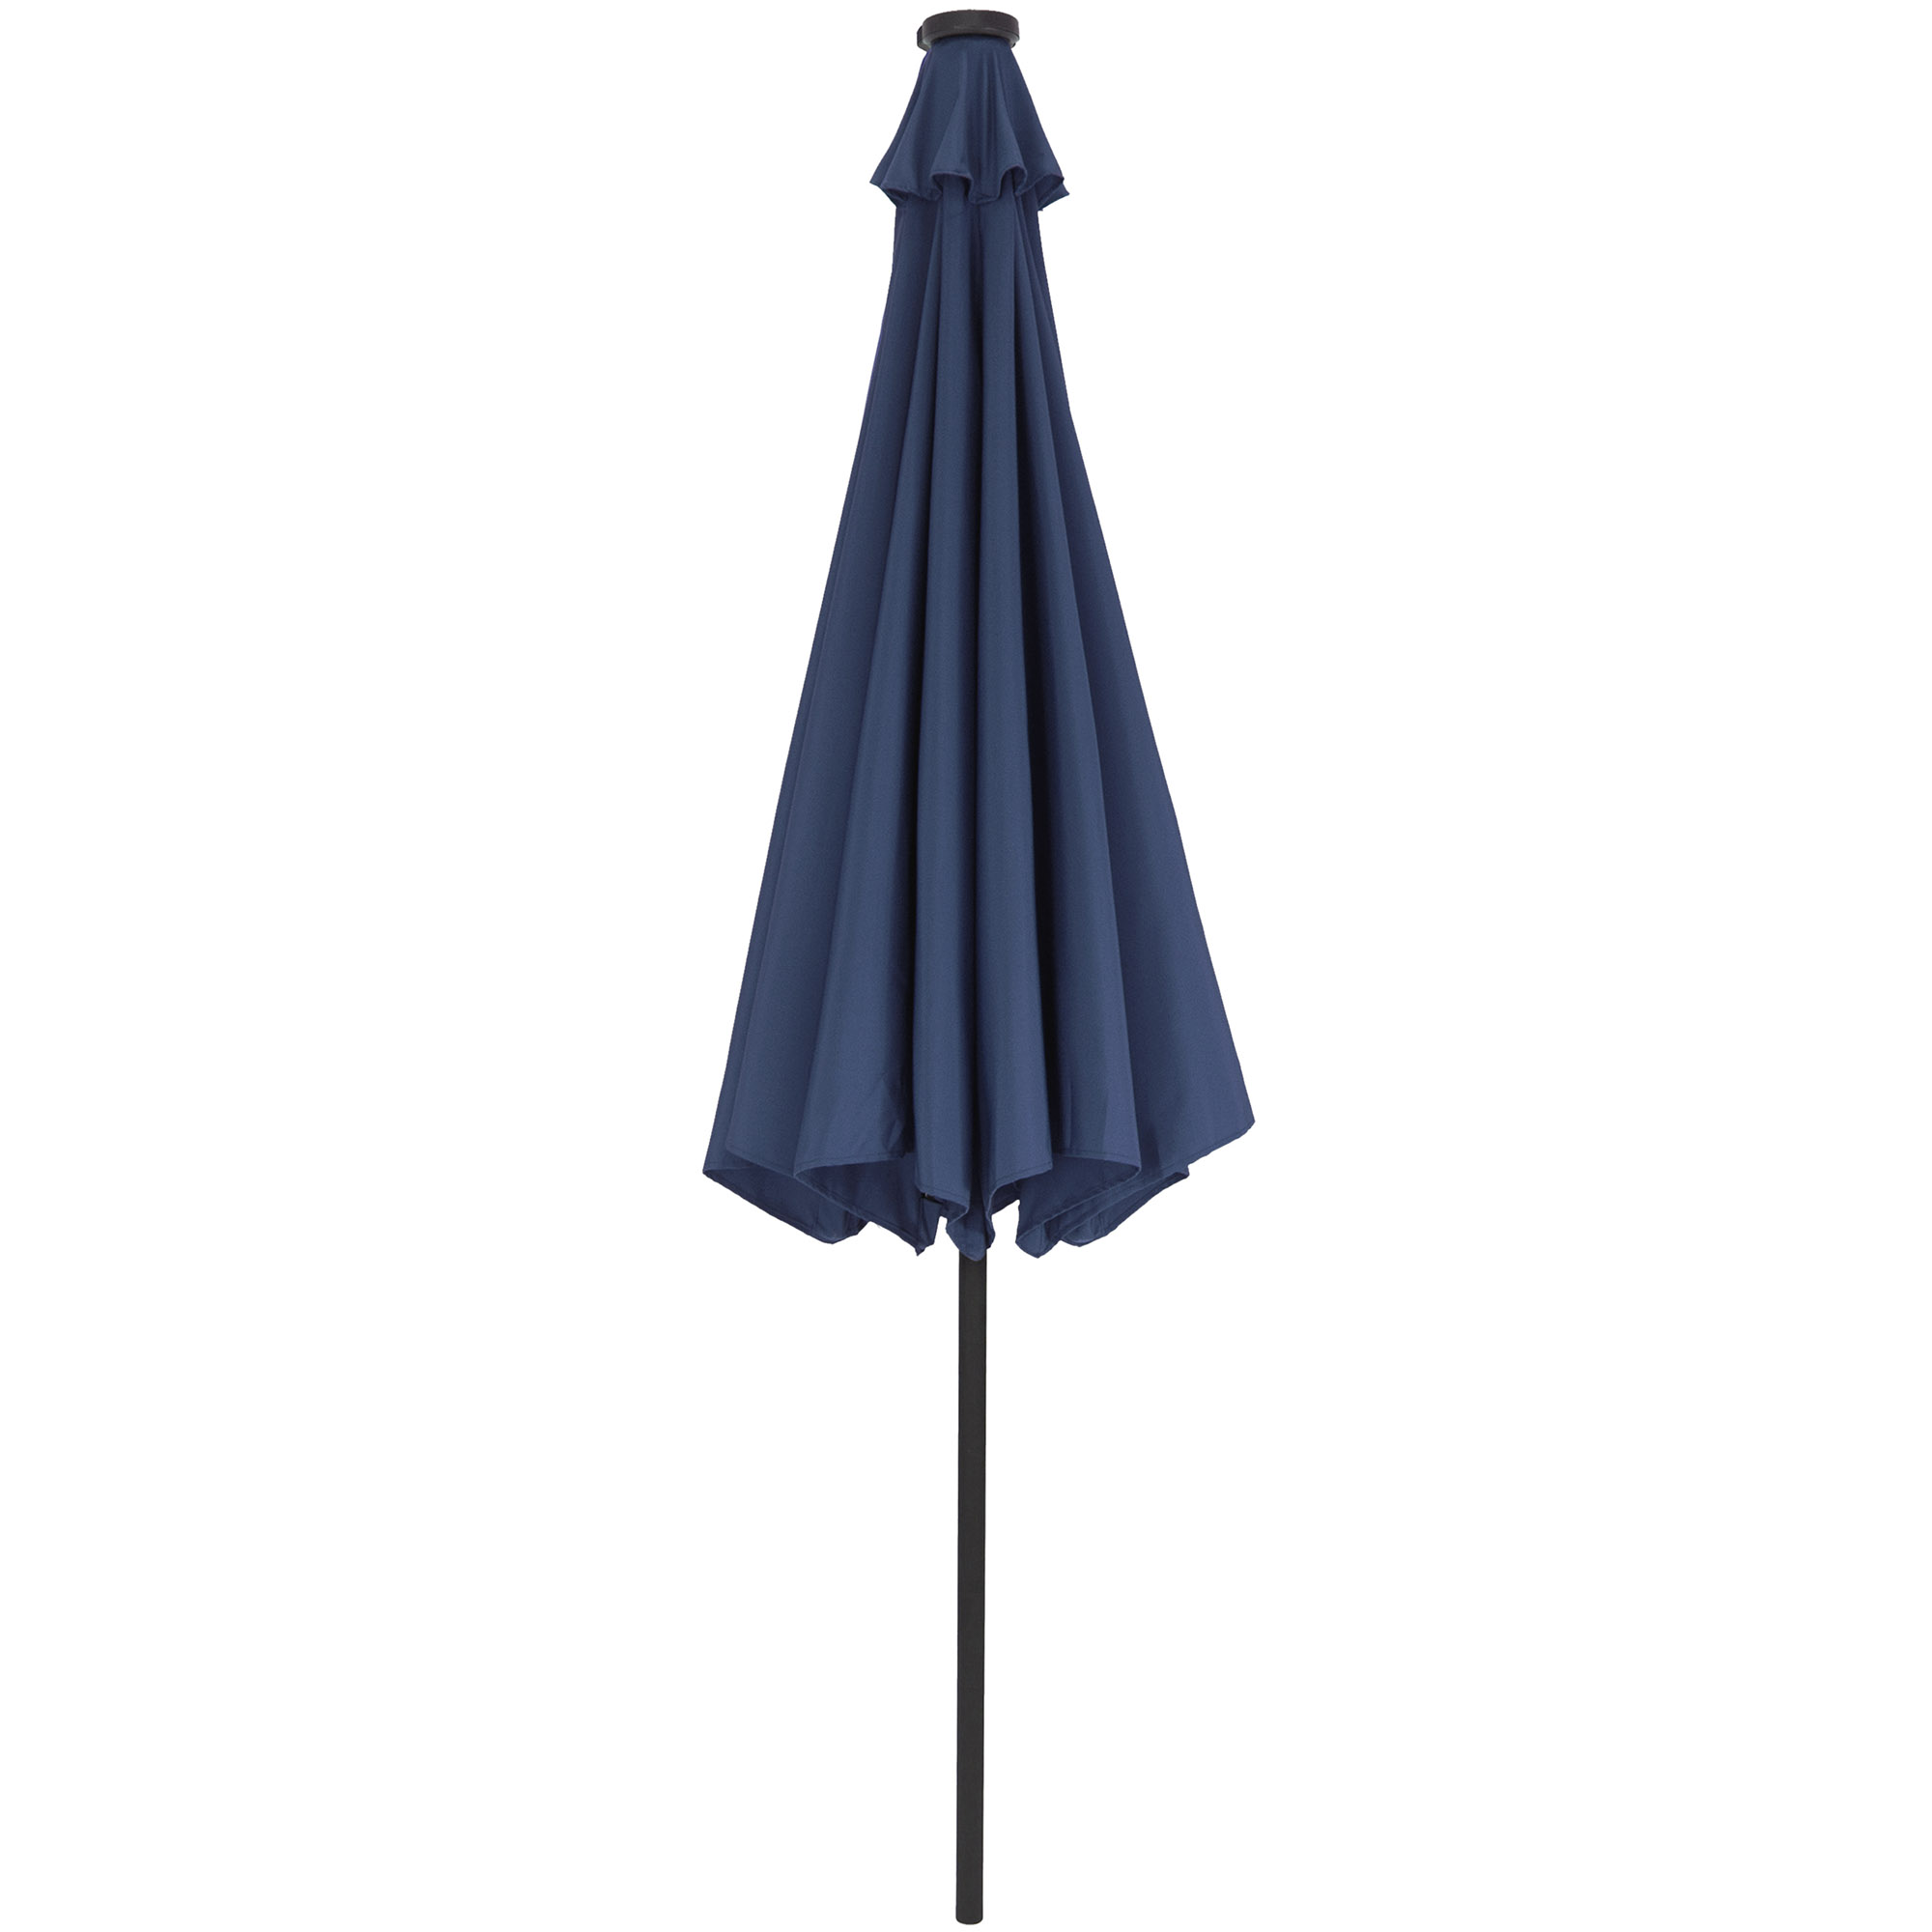 BCP-10ft-Solar-LED-Lighted-Patio-Umbrella-w-Tilt-Adjustment-Fade-Resistance thumbnail 45